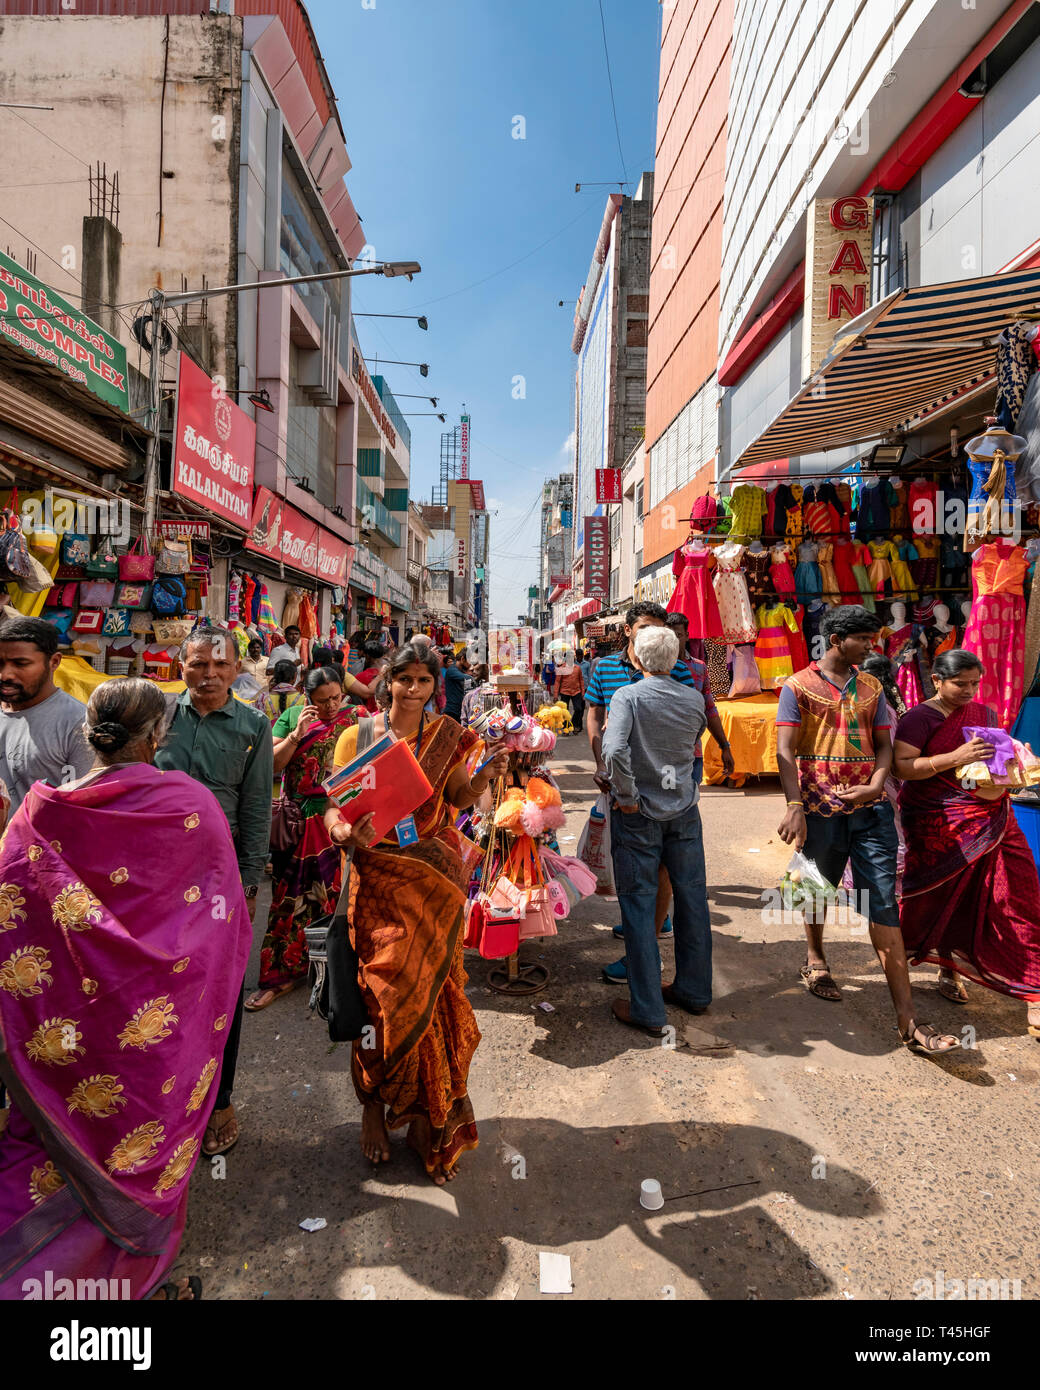 Vertical streetview of a busy shopping precinct in Chennai, India. Stock Photo